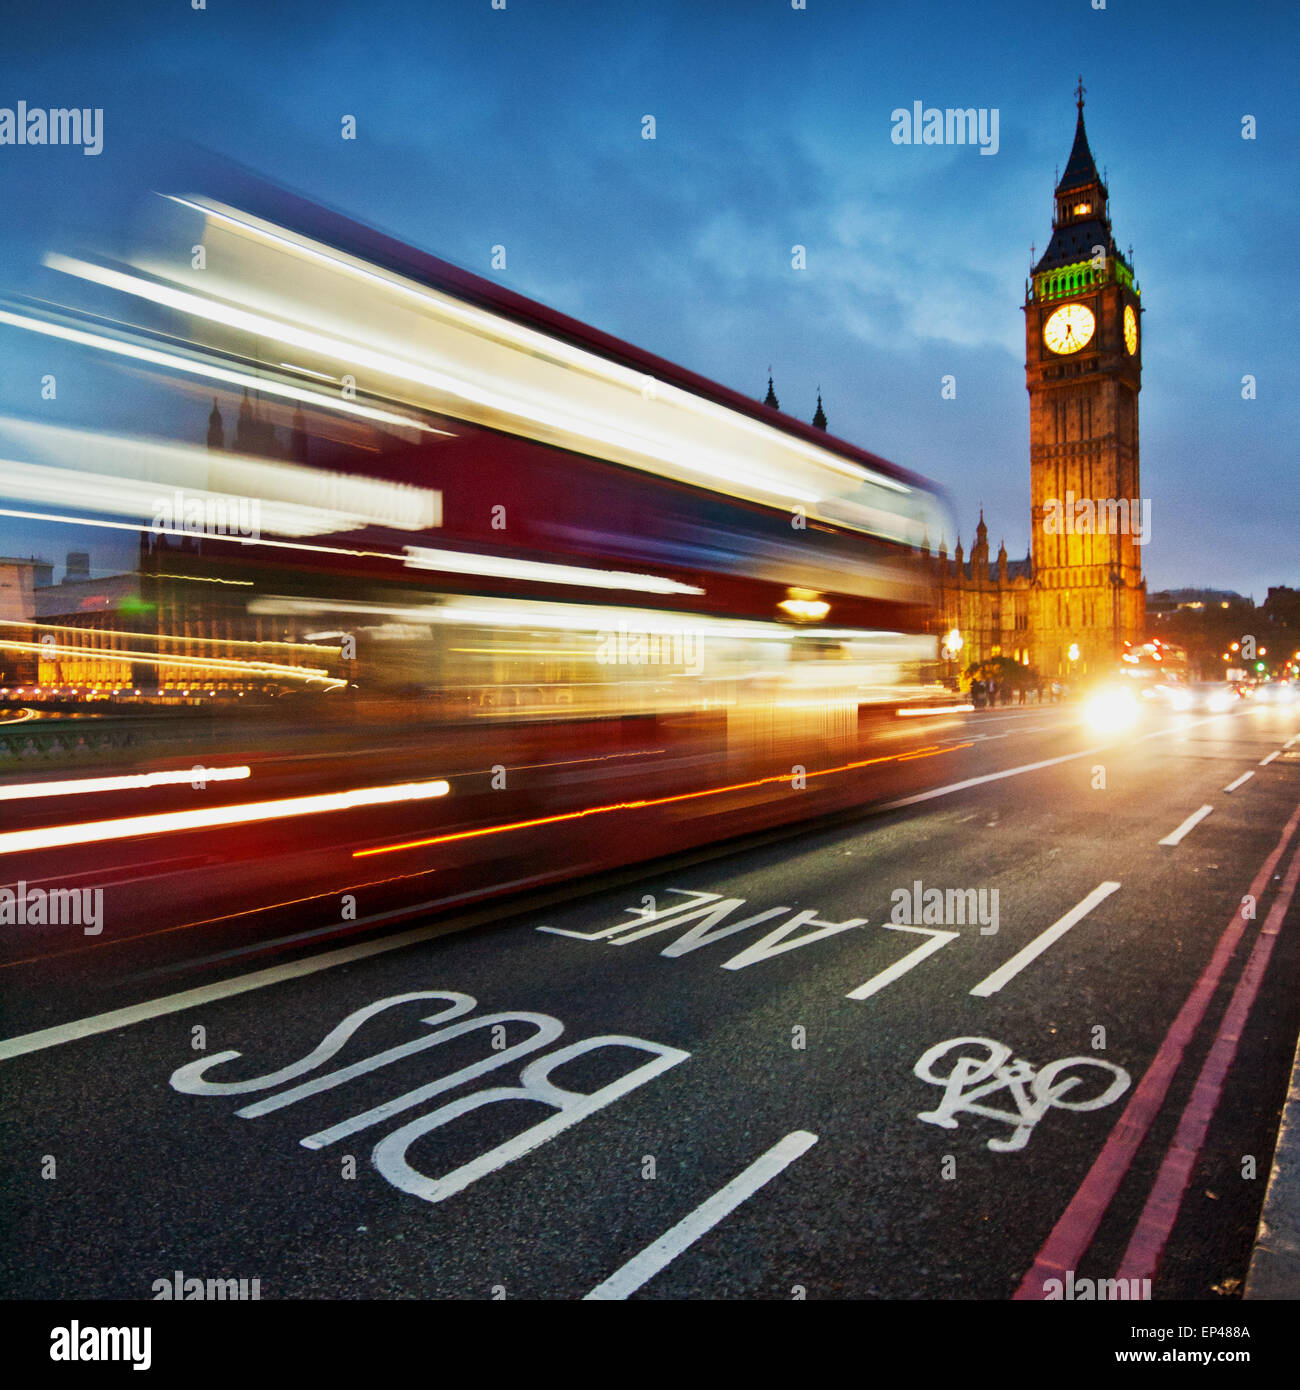 Light trails on Westminster Bridge with Big Ben in the background, London, UK Stock Photo